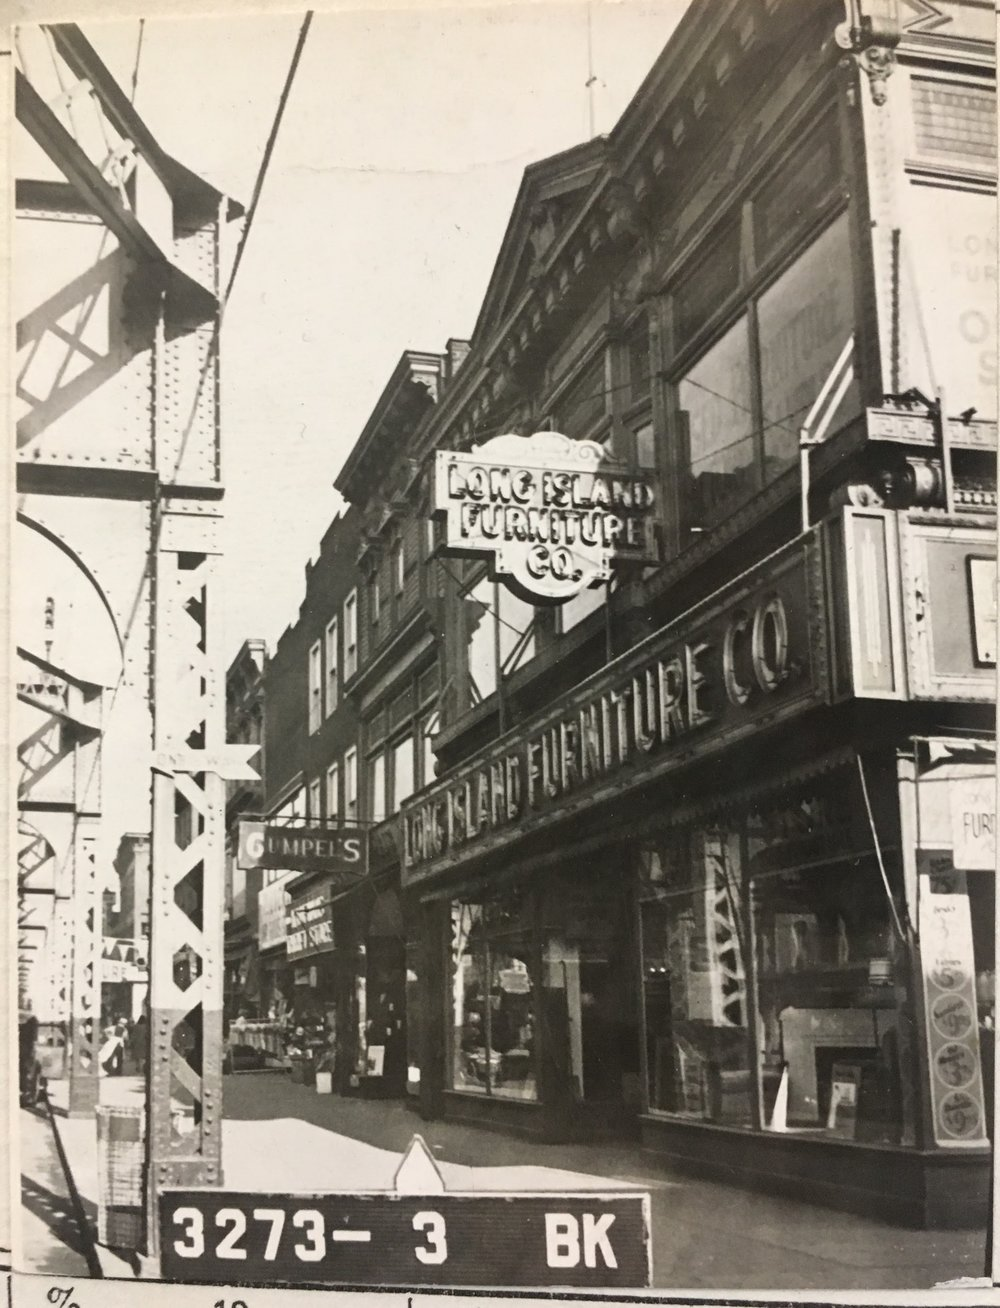 Long Island Furniture located at 1211 Broadway in the 1940s. Department of Finance Collection, NYC Municipal Archives.